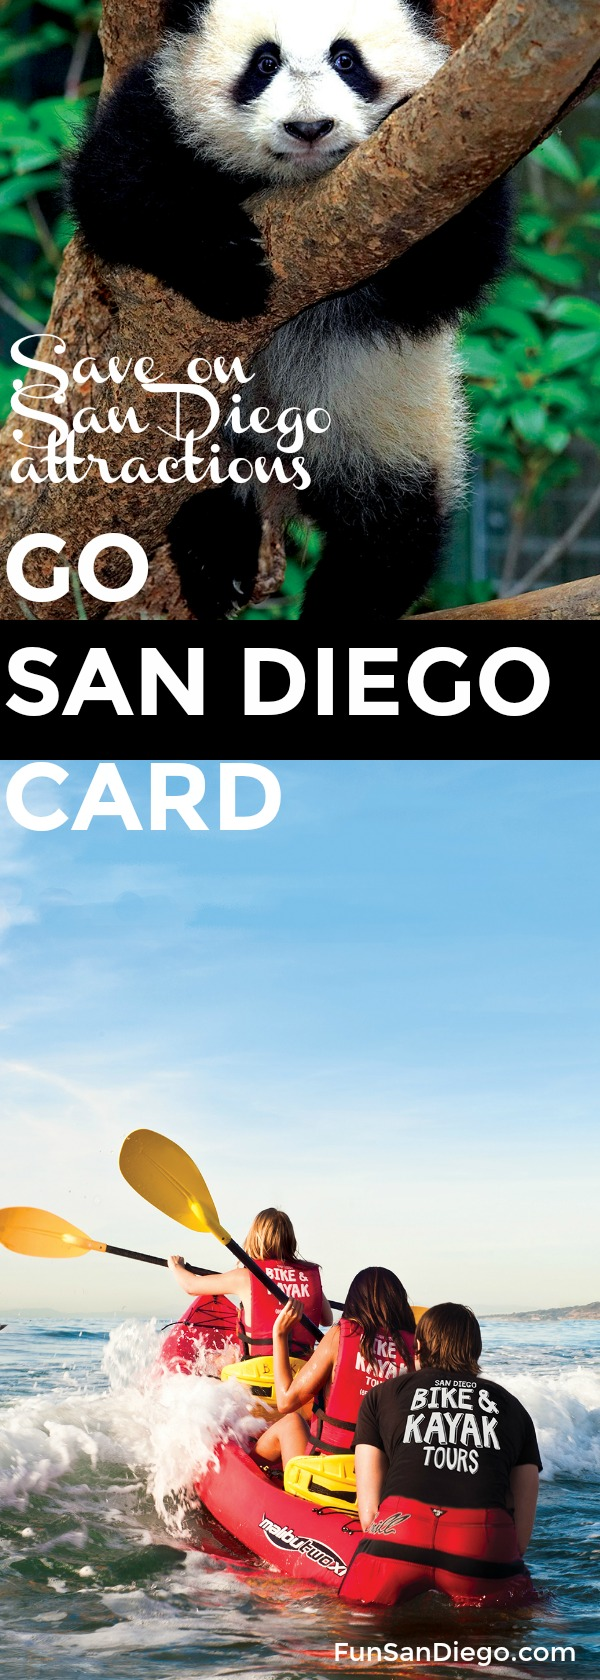 Visiting San Diego? You can save up to 55% on the best San Diego attractions and activities with the Go San Diego Card. | best things to do in San Diego | San Diego attractions | San Diego Zoo | FunSanDiego.com